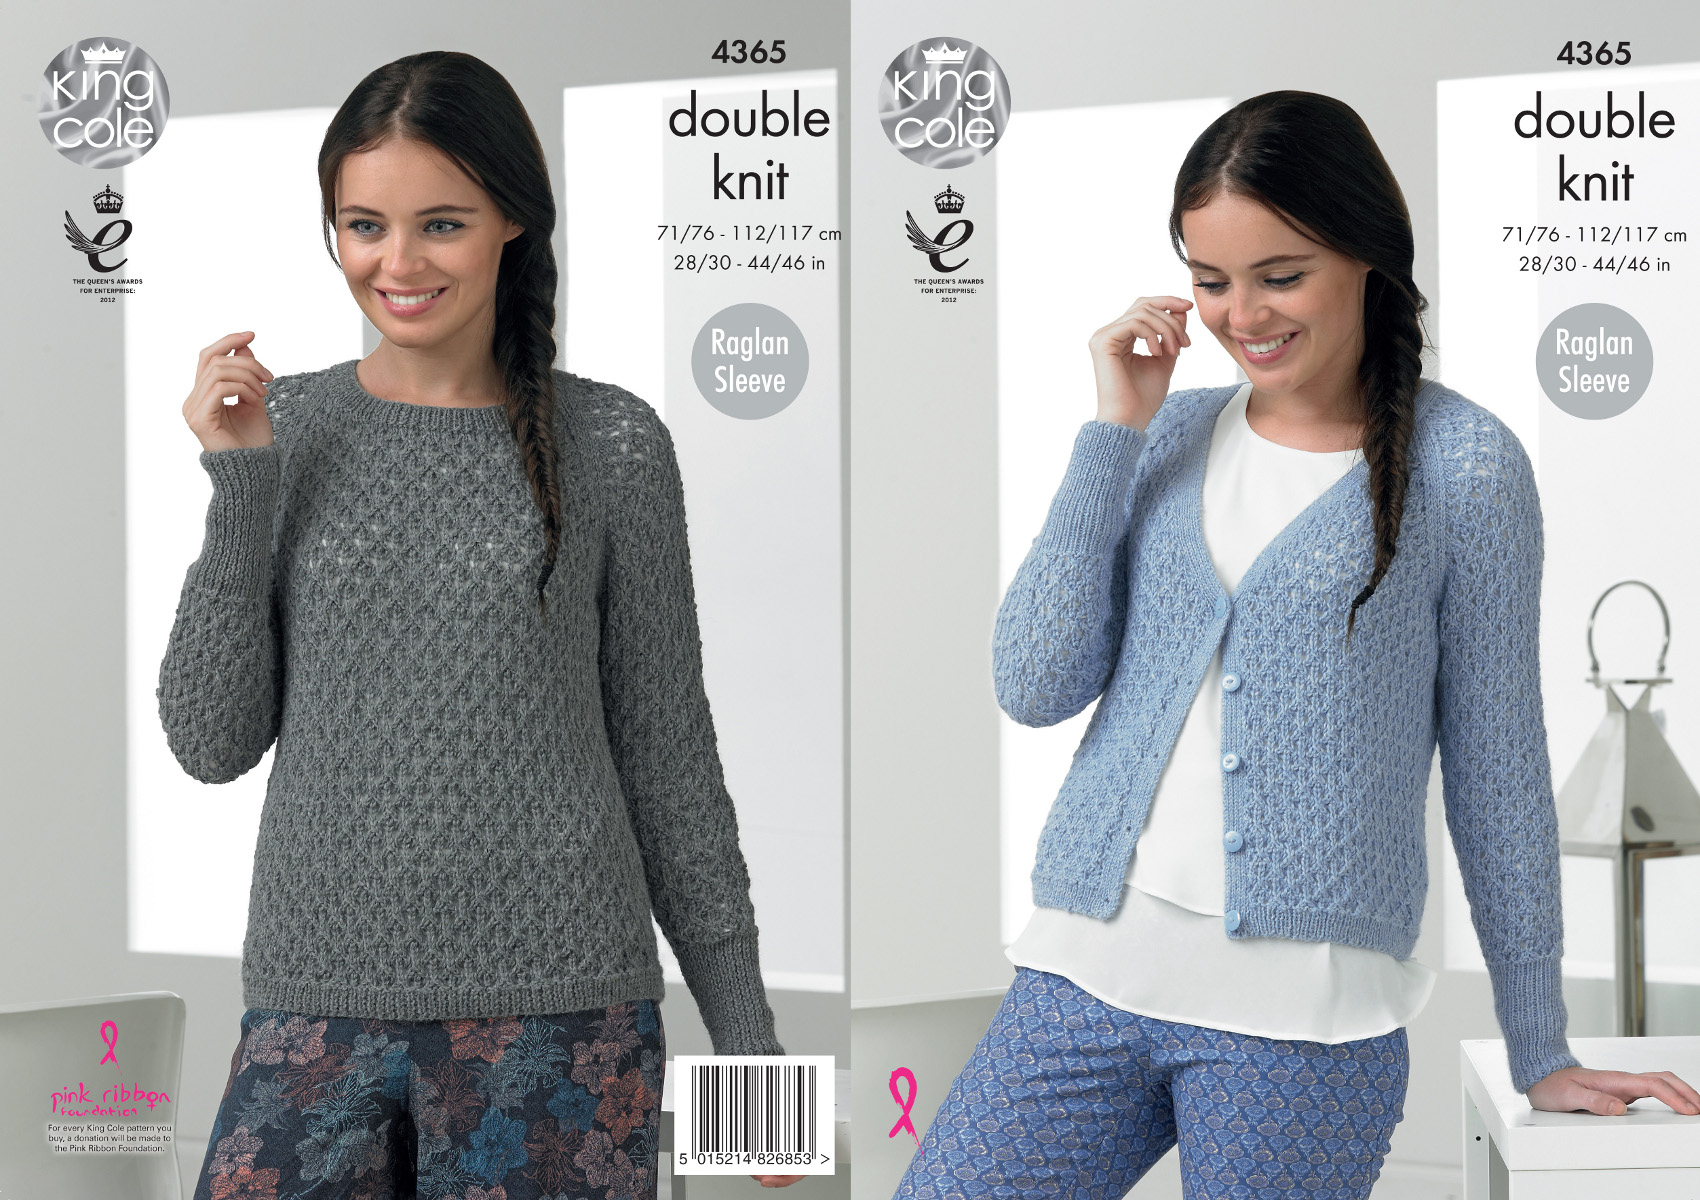 Knitting Patterns For Women Details About Raglan Sleeve Sweater Jumper Cardigan Ladies Knitting Pattern King Cole Dk 4365